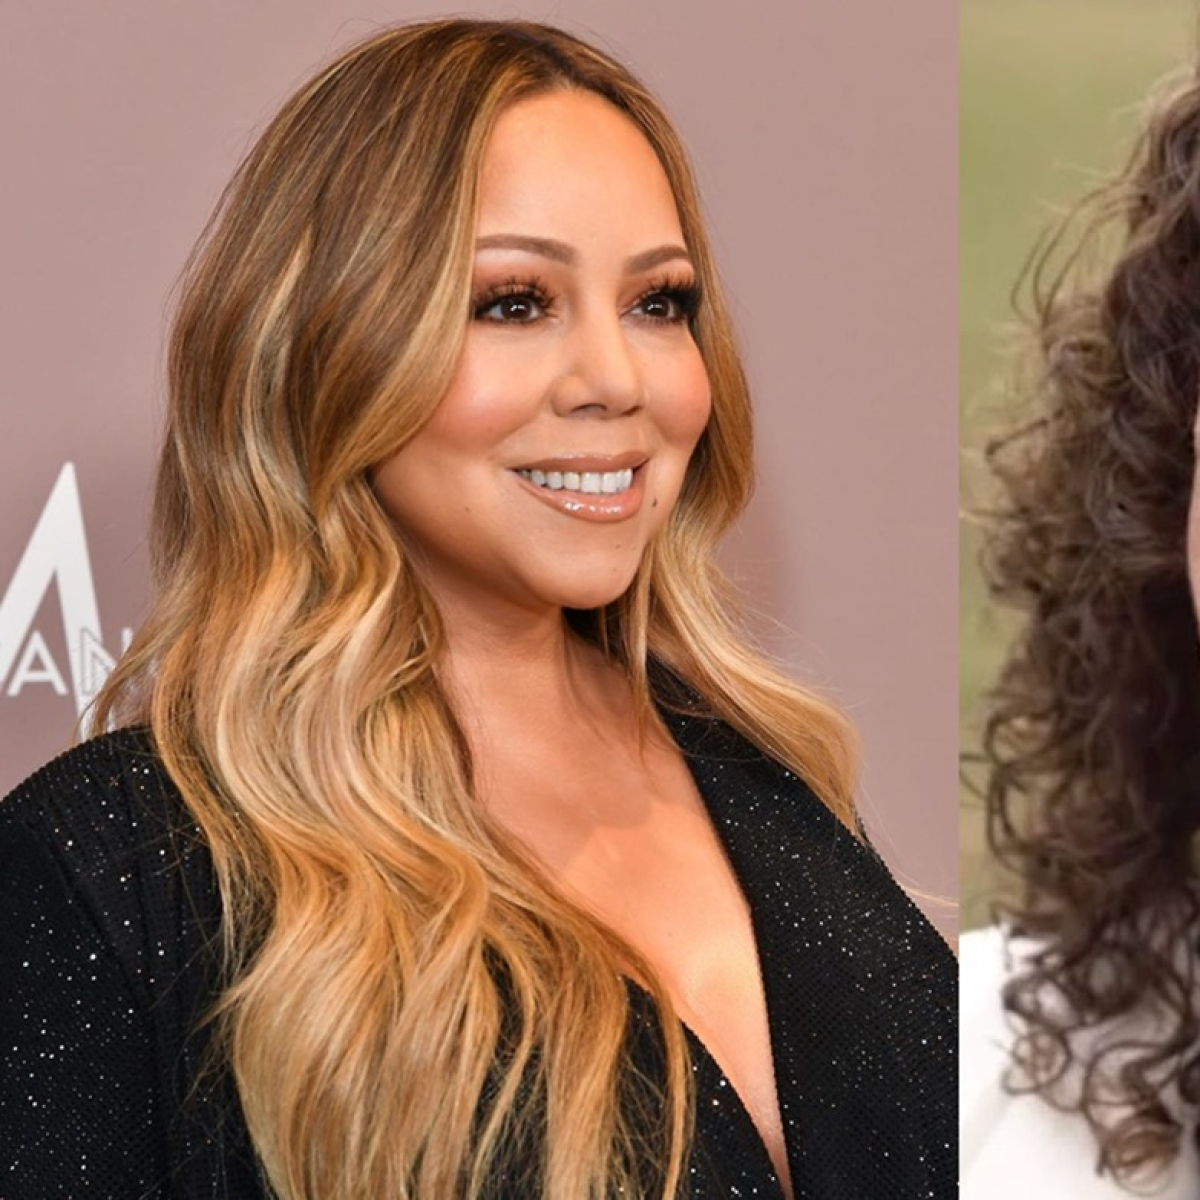 Mariah Carey's sister Alison is suing their mother for 'forcing her to perform sex acts on strangers at the age of 10'